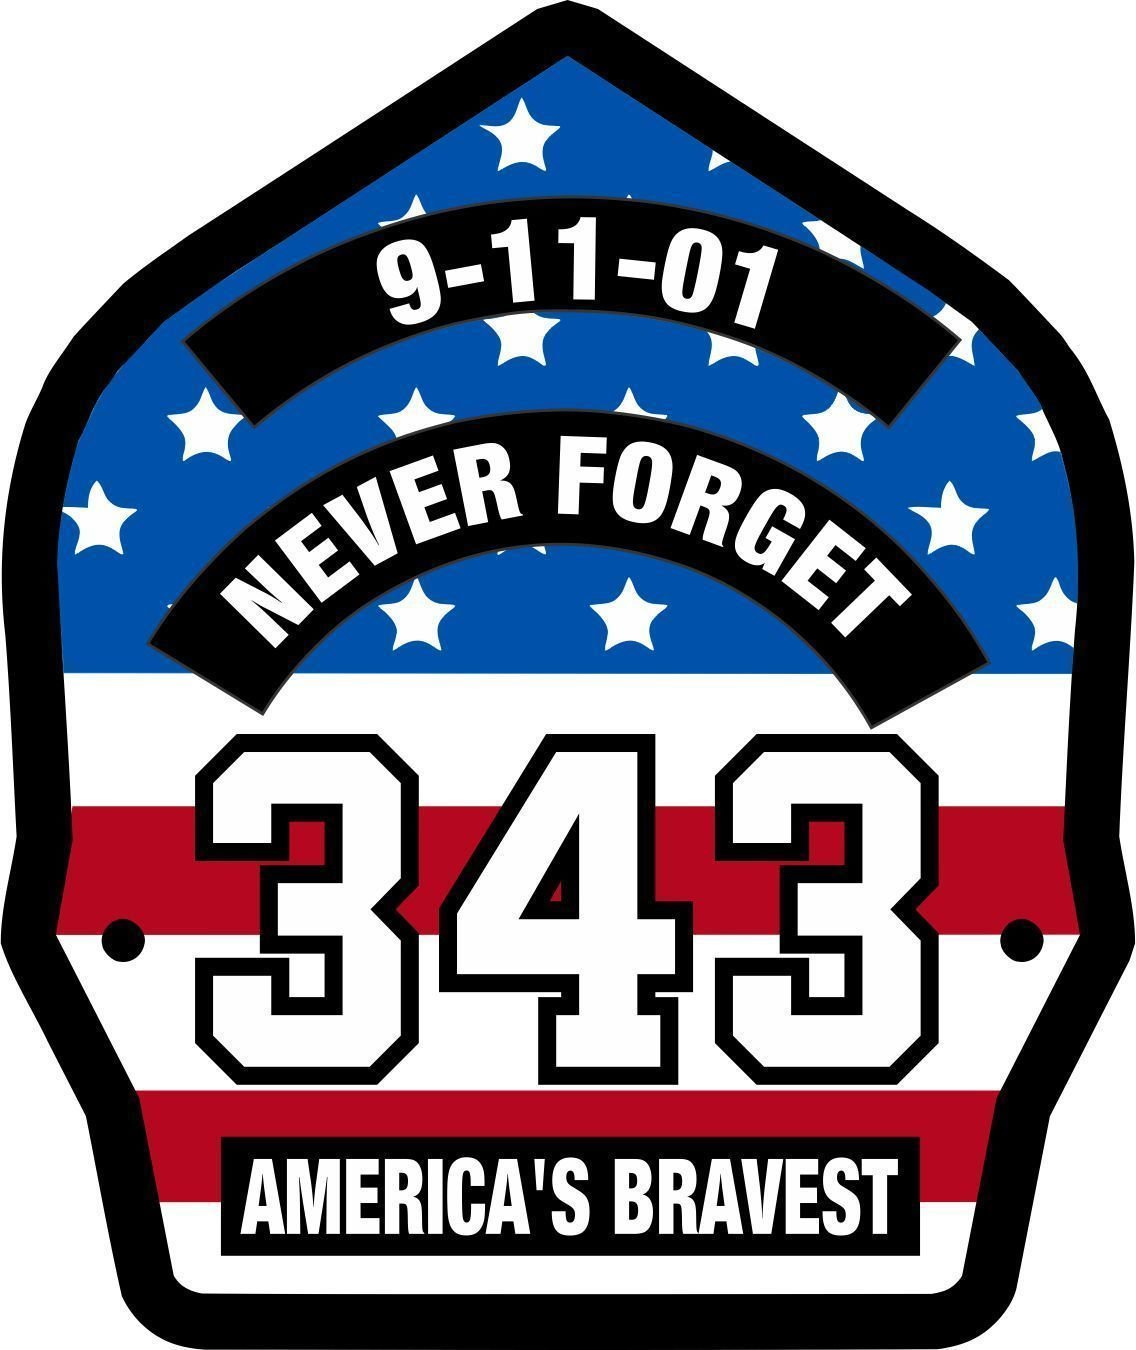 Amazon.com: MAGNET Firefighter 911 Never Forget 343 USA Flag.